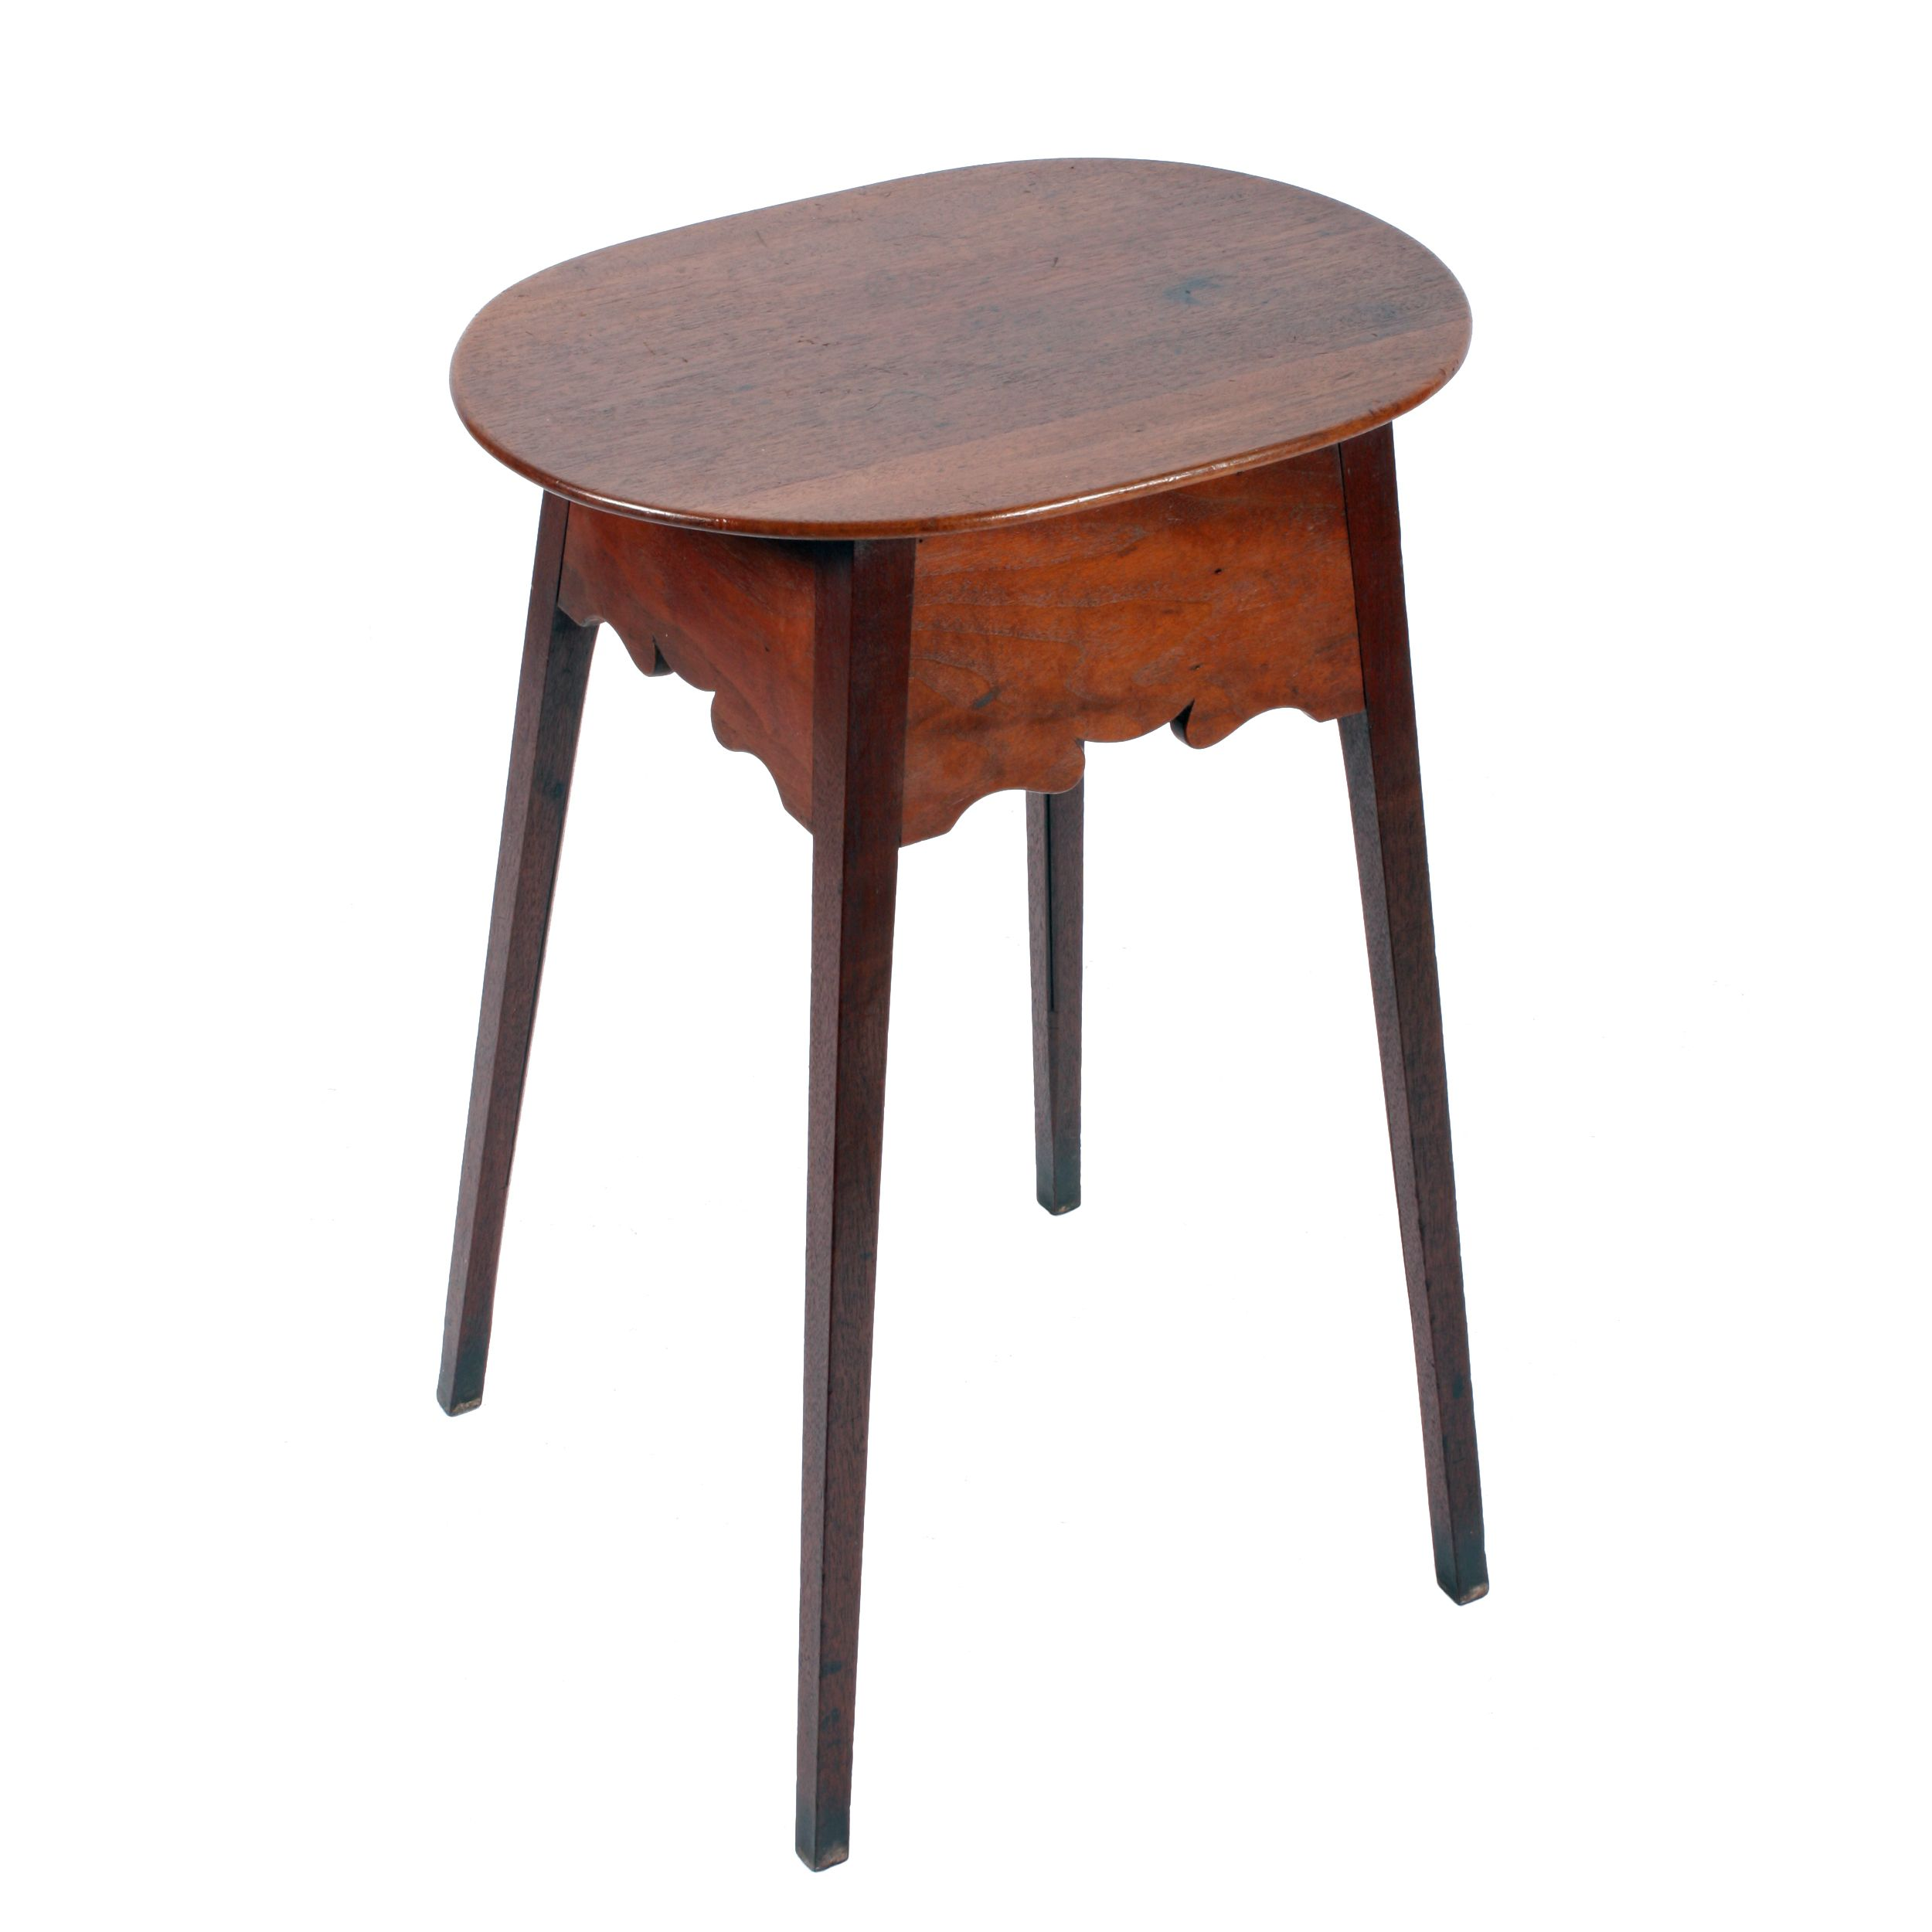 Georgian walnut lamp table antique tables pinterest discover georgian walnut lamp table geotapseo Image collections